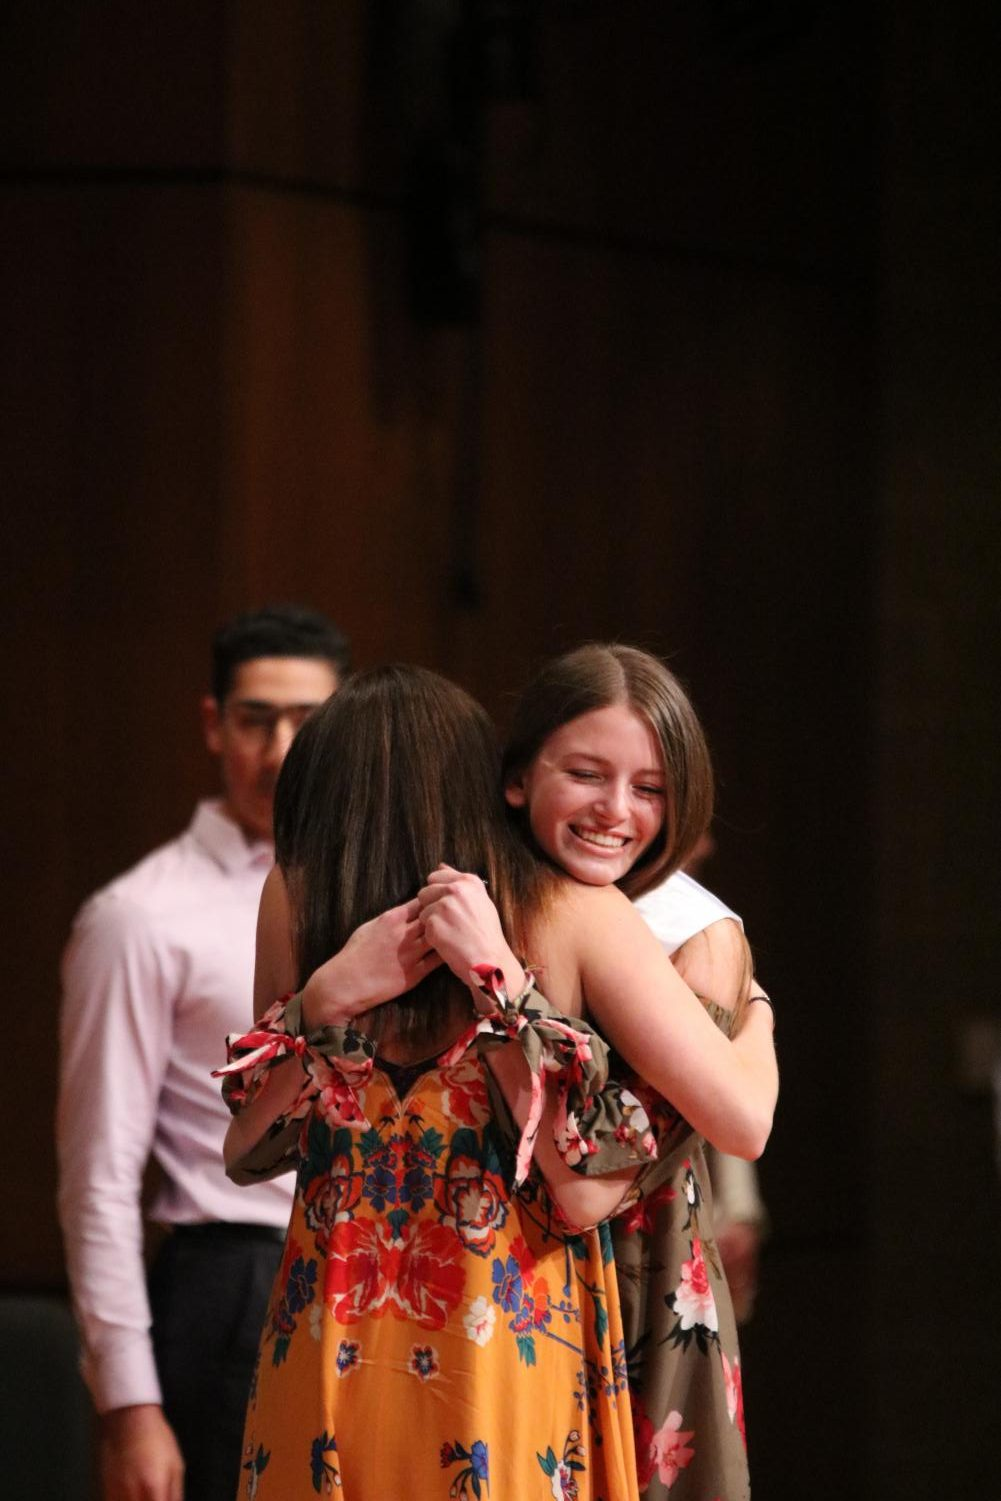 With open arms, senior Kendall Rintamaki hugs Ashley Schueler in celebration.